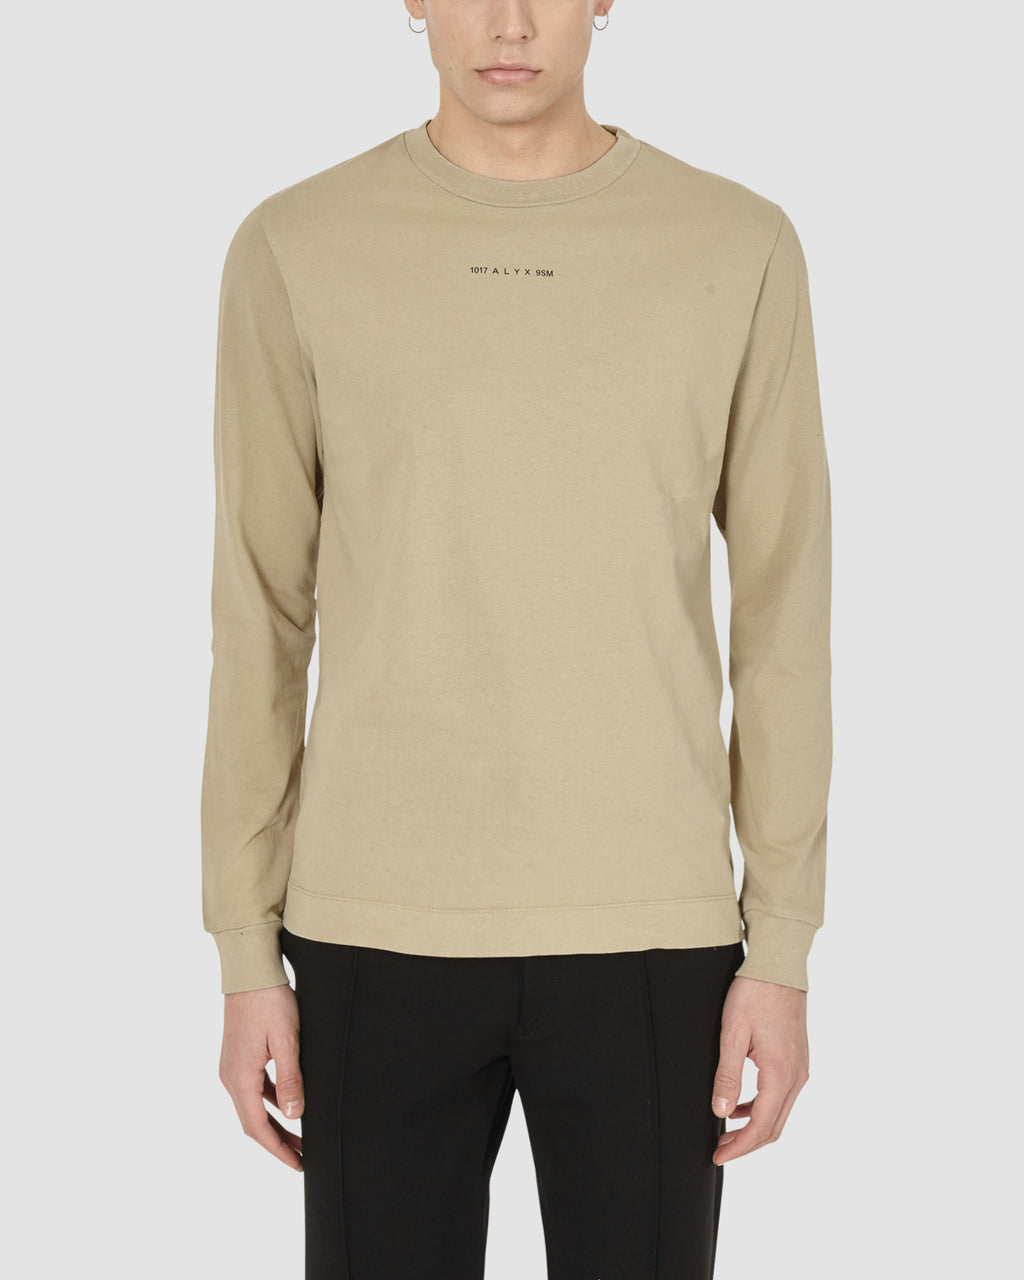 1017 ALYX 9SM | LS TEE W PRINTS | T-Shirt | DARK TAN, Google Shopping, Man, MEN, S20, S20EXSH, T-Shirts